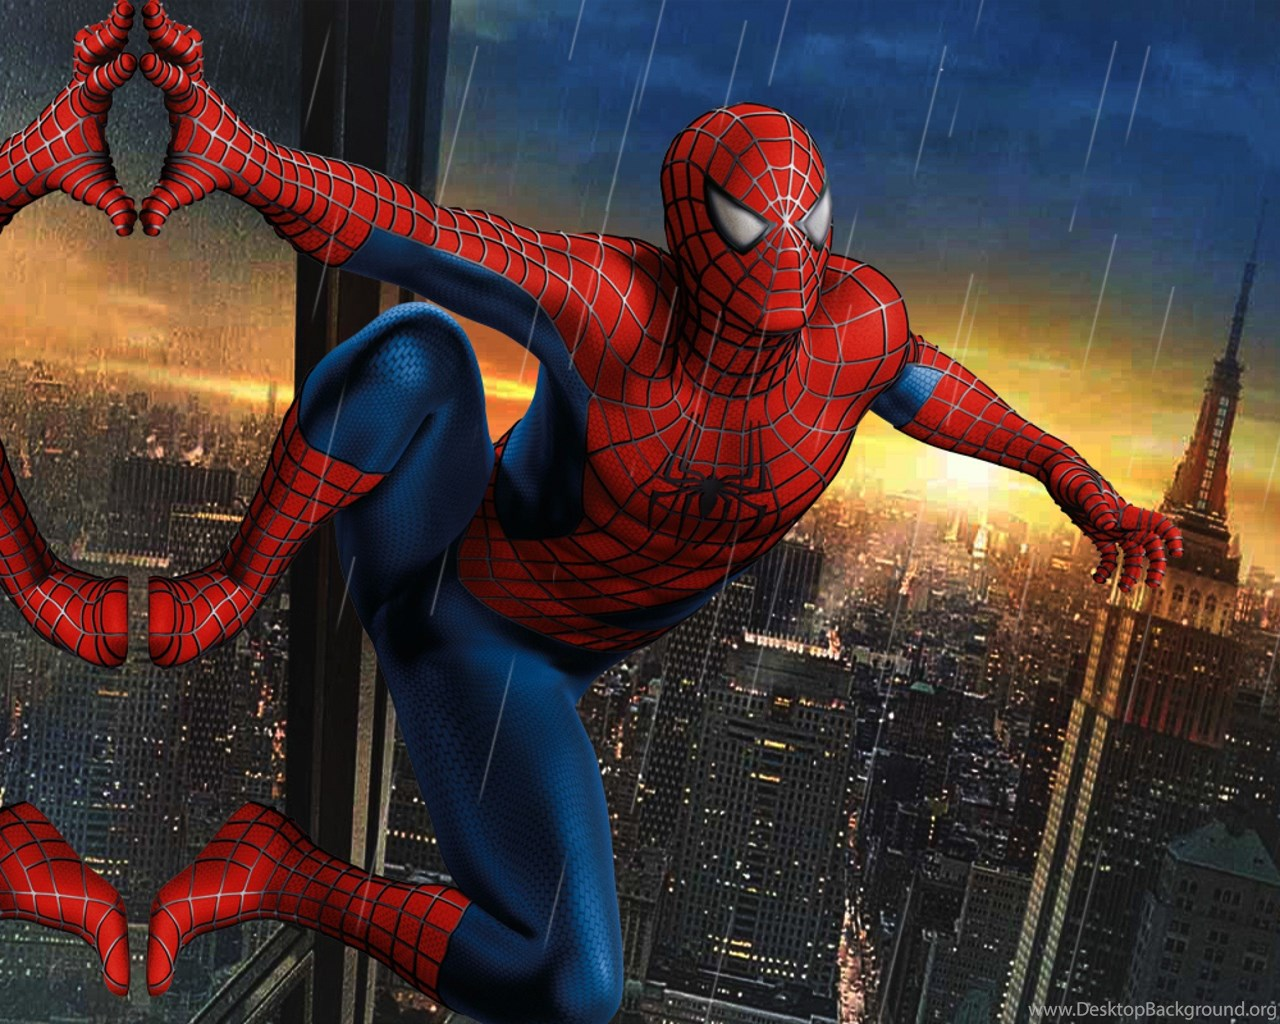 spiderman 3d wallpaper,spider man,superhero,fictional character,cg artwork,fiction